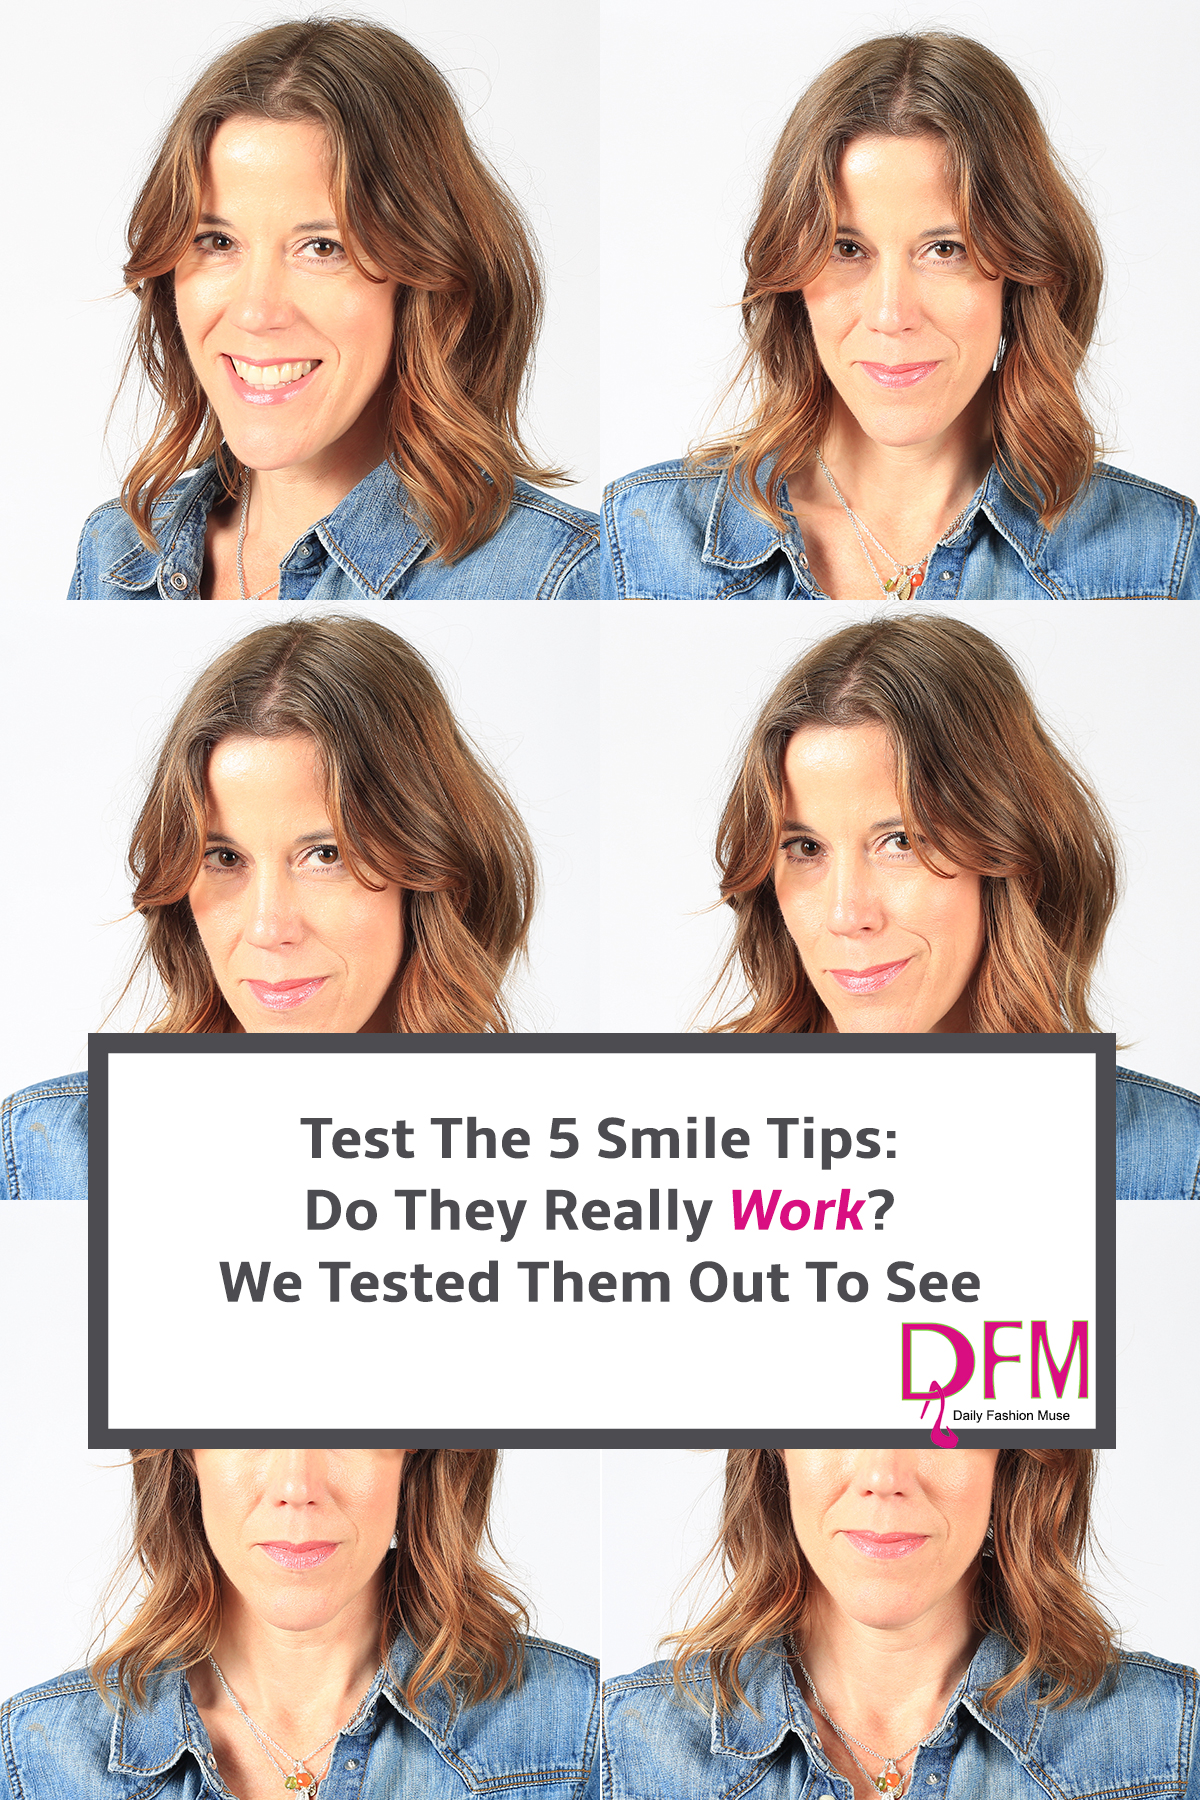 Wondering if the 5 smile tips actually make you smile better? Click through to see what happened when we tried the suggestions.